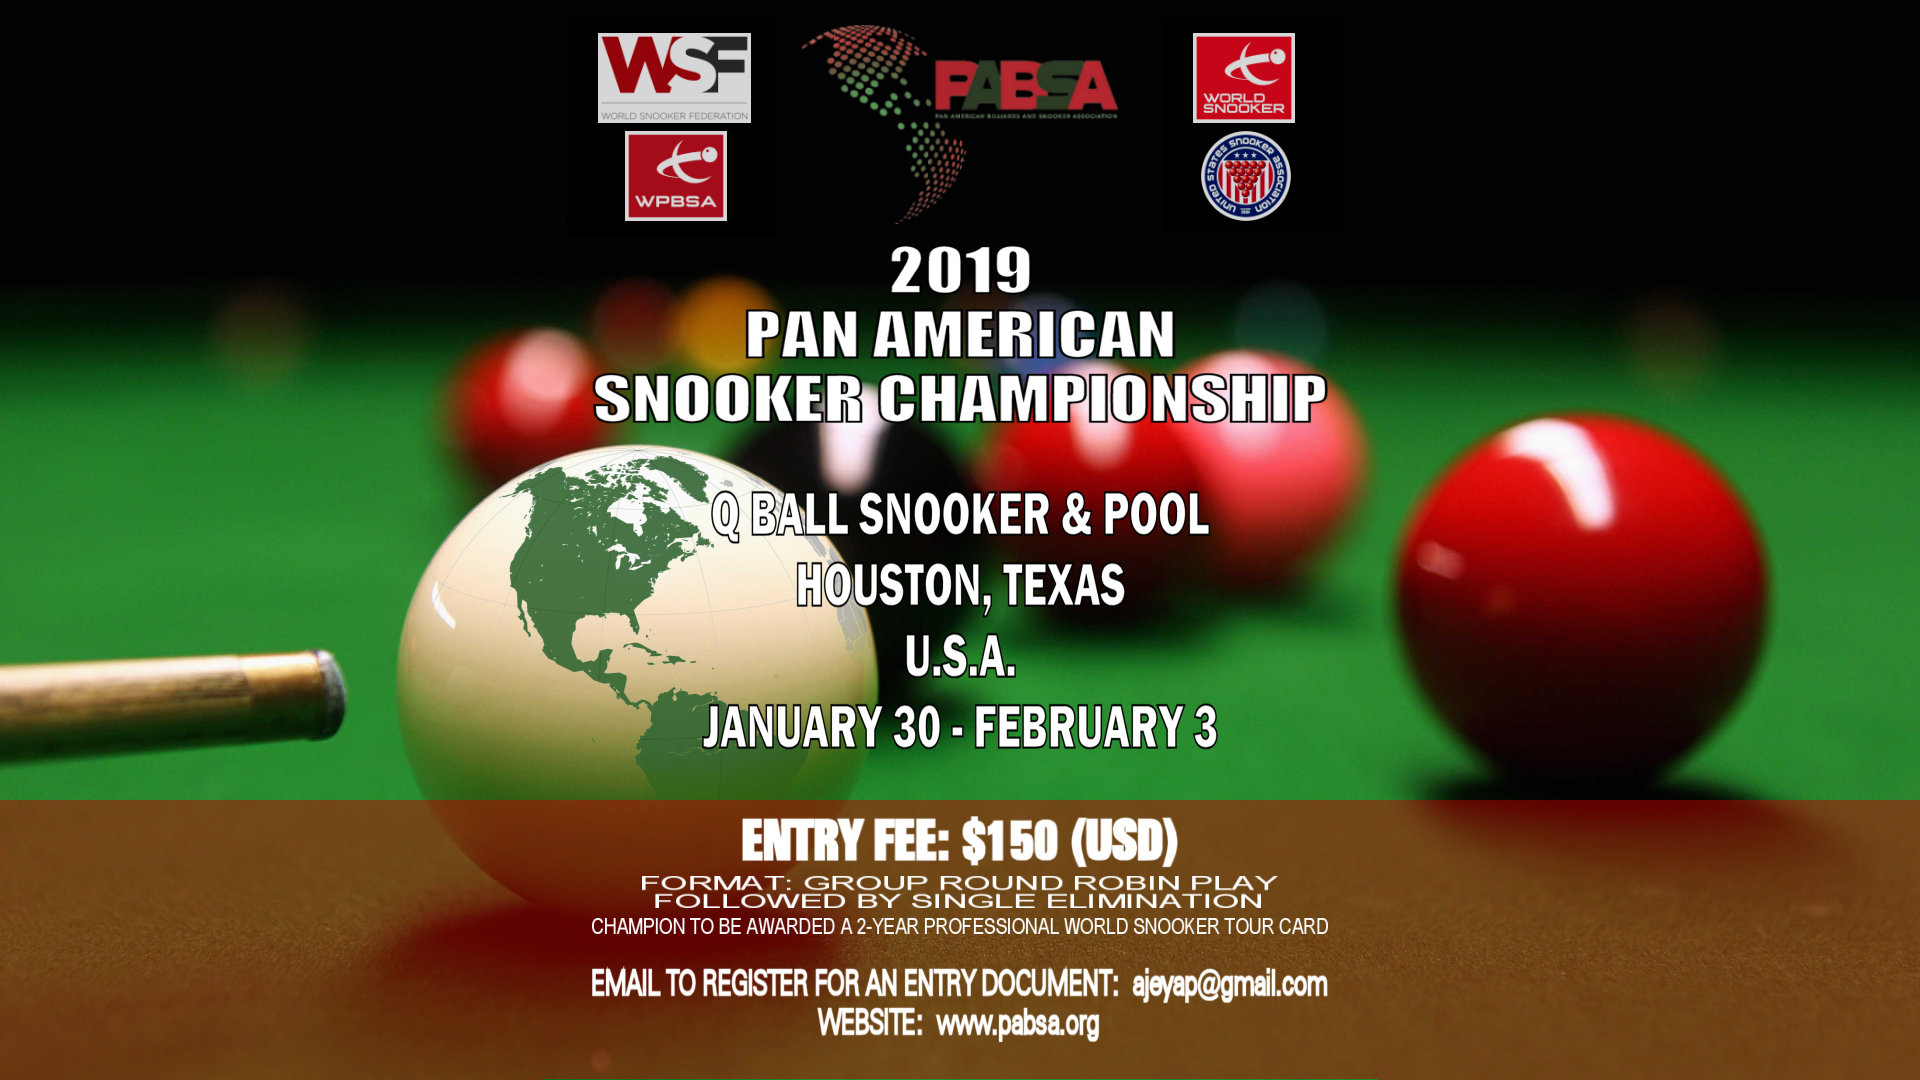 //www.pabsa.org/wp-content/uploads/2018/11/2019-pan-american-snooker-championship-entry-1080.png